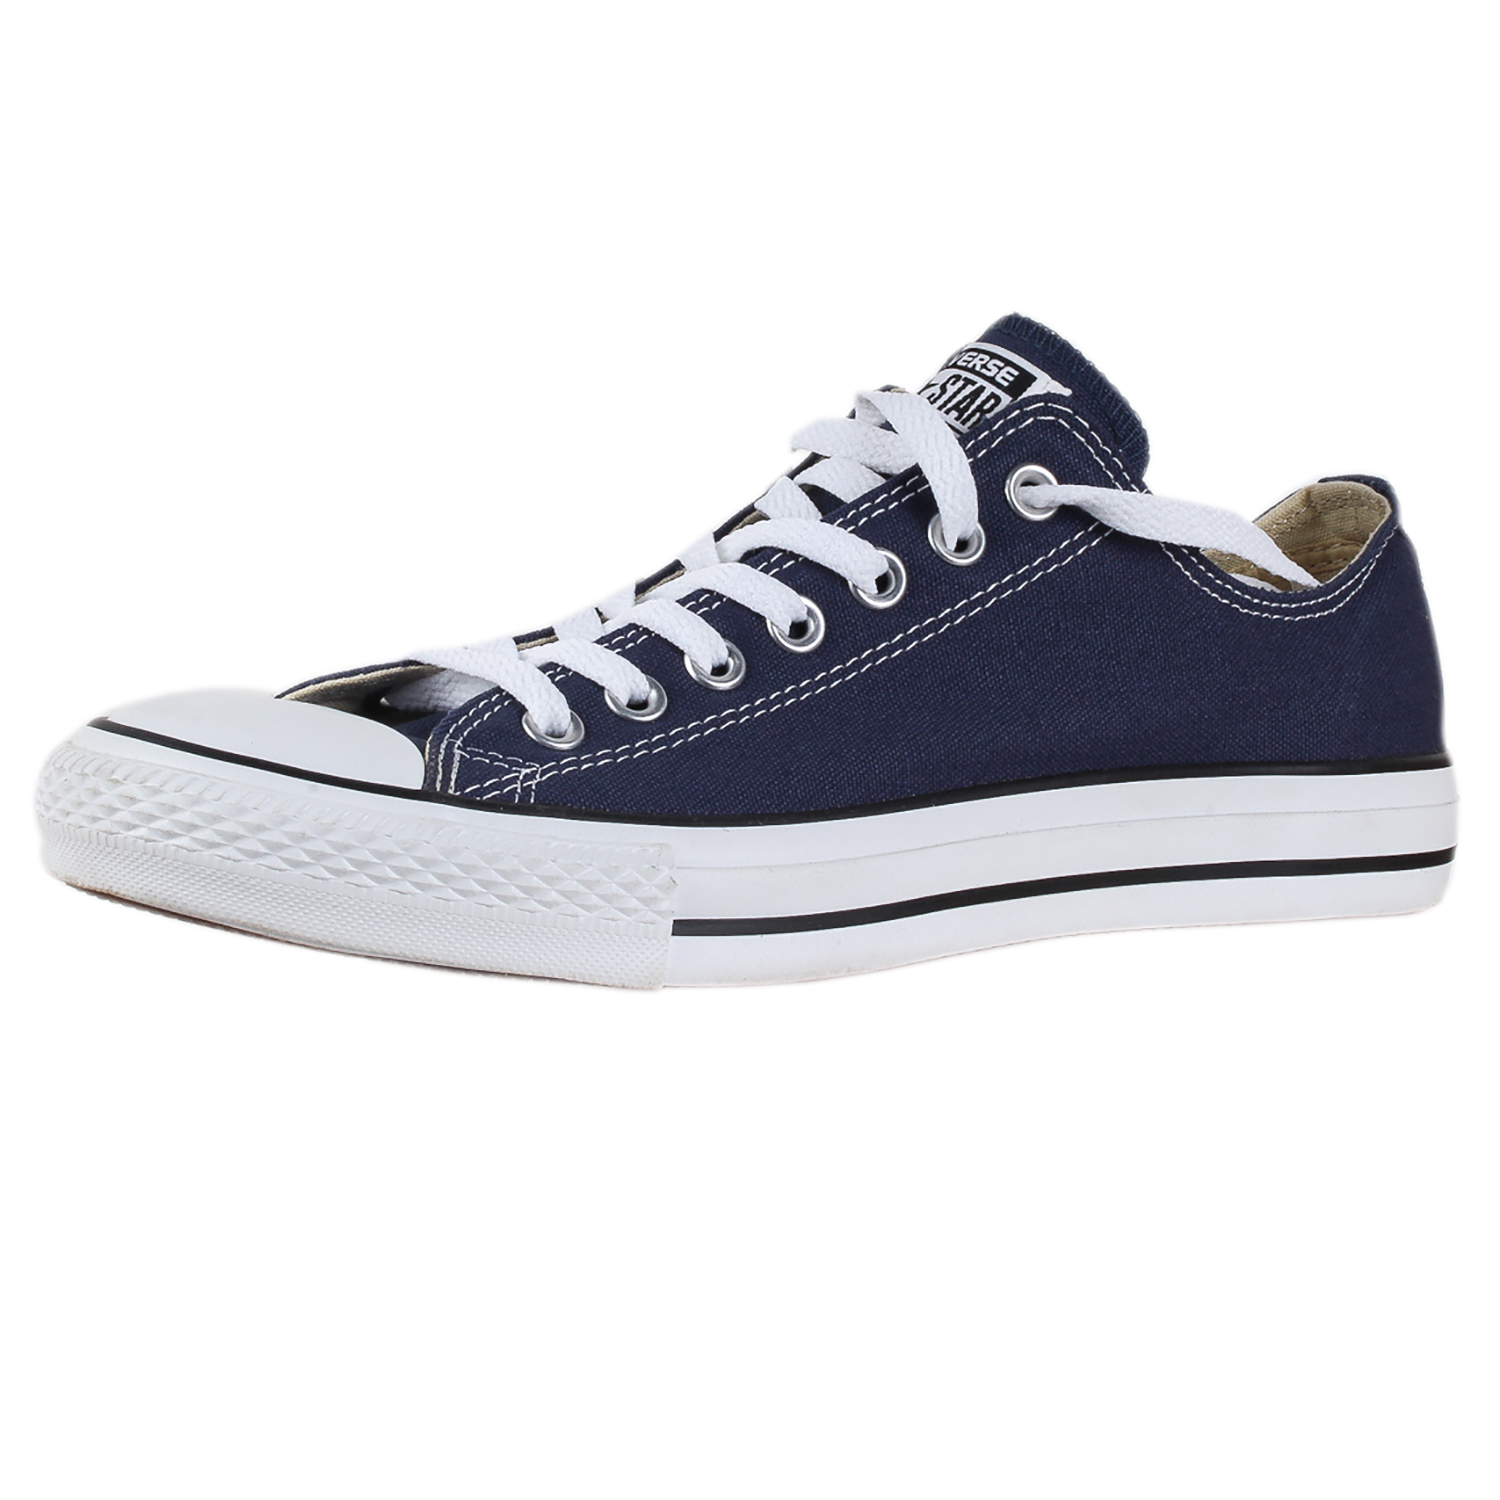 92dca4f945abaa Details about Converse Mens CT Casual Shoes 9697c-9 Navy Size 9M 11W